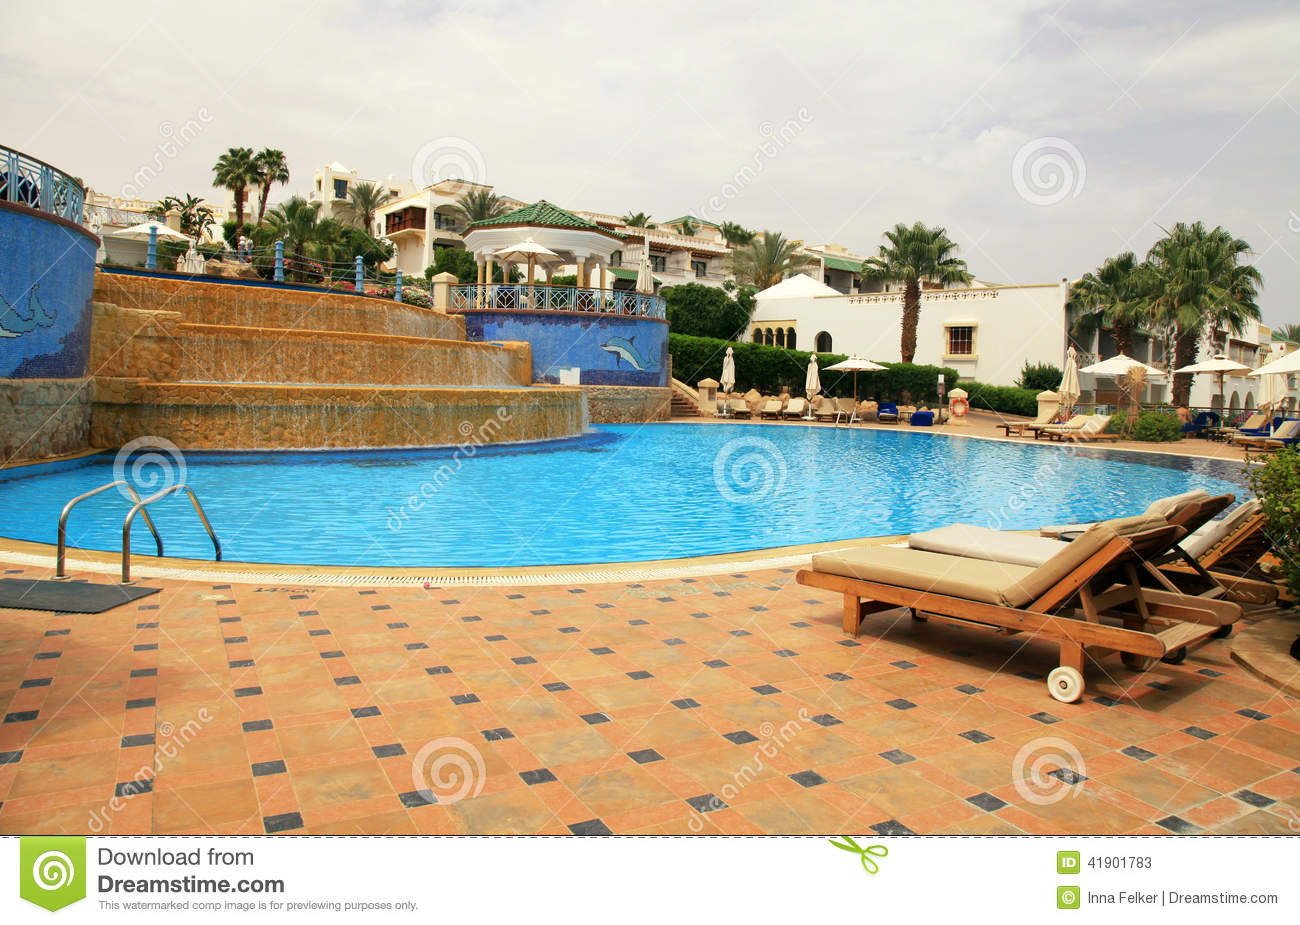 Piscine d 39 h tel de luxe egypte image stock image 41901783 for Piscine destock